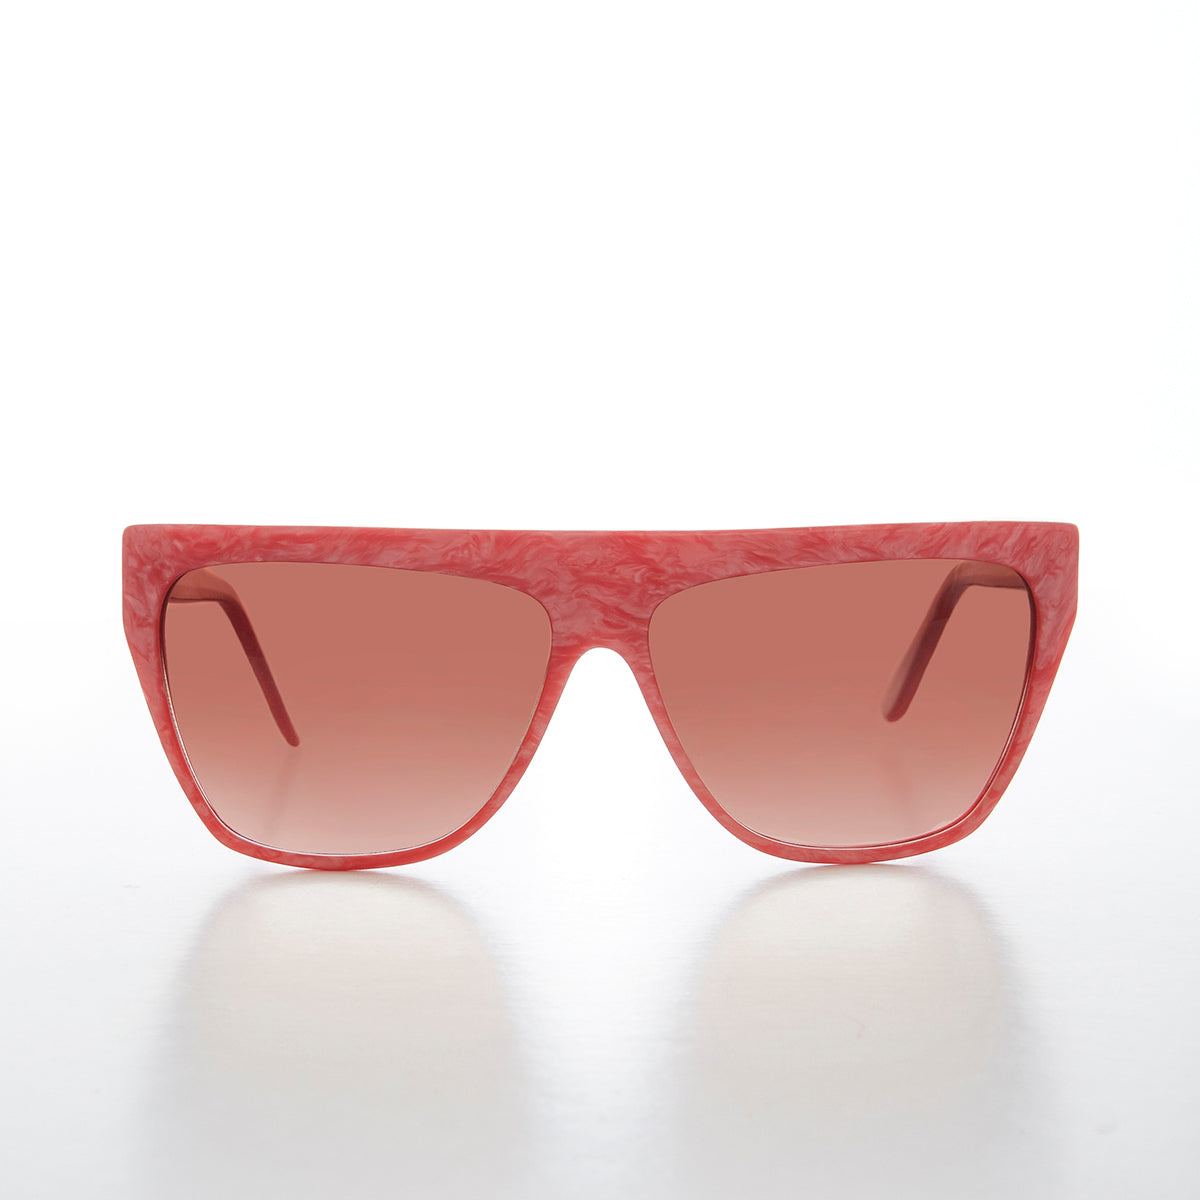 Colorful 80s Flat Top Sunglass